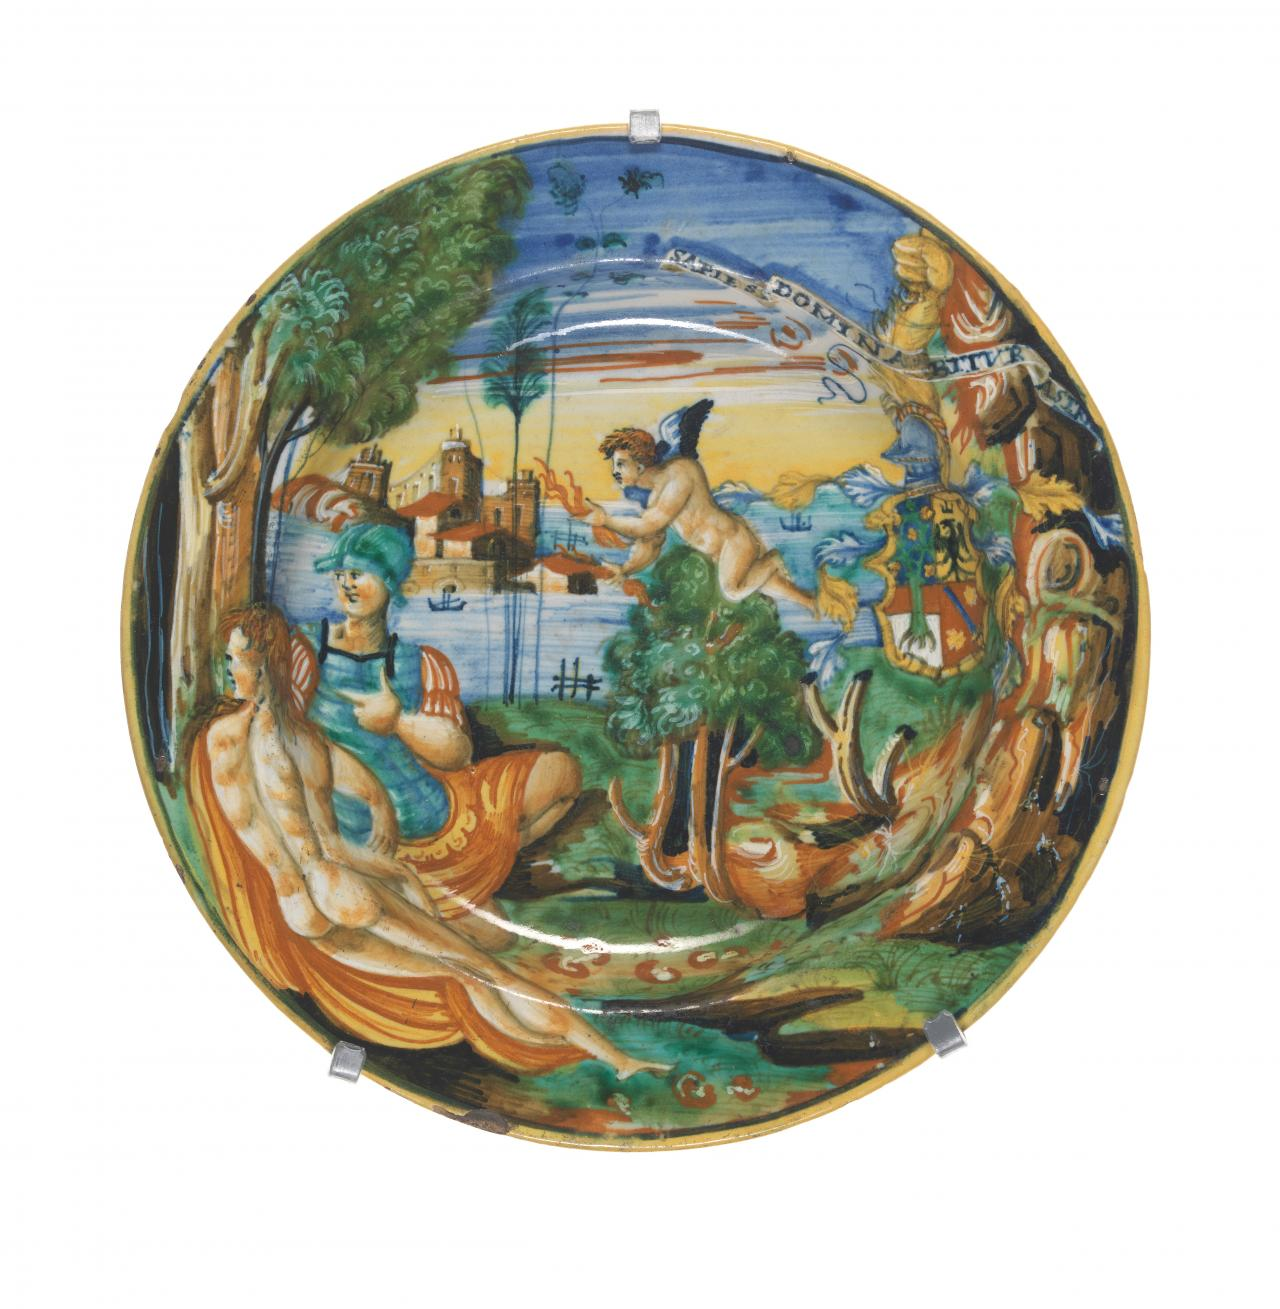 Venus and Mars, bowl from the Sapies service